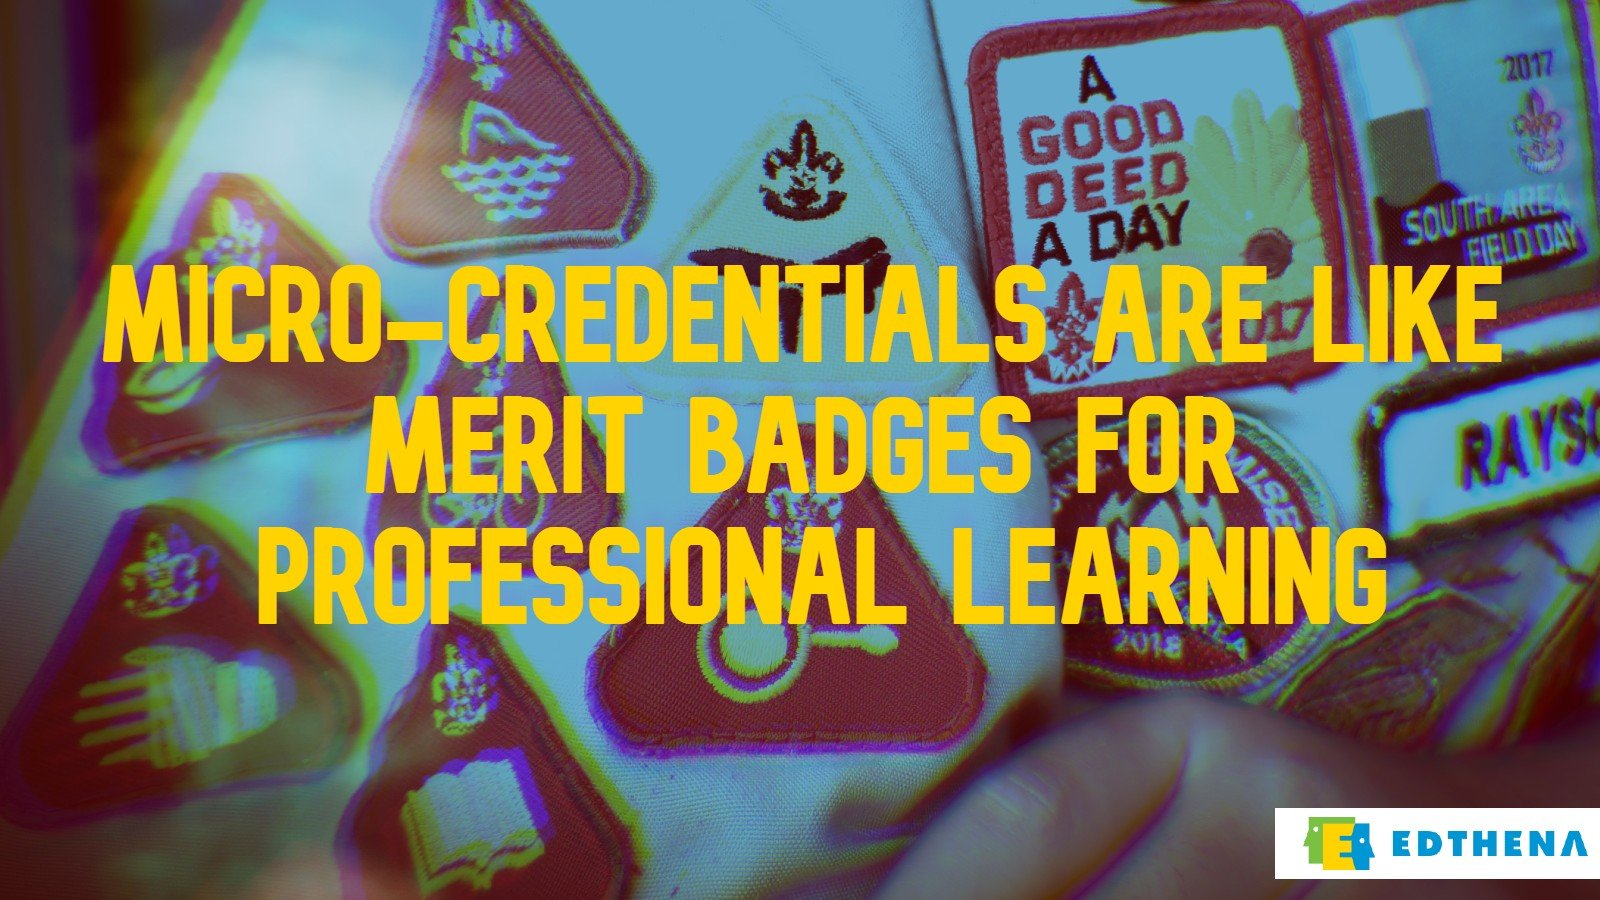 Edthena Adds Micro-Credentials to Help Districts Recognize Teacher Growth